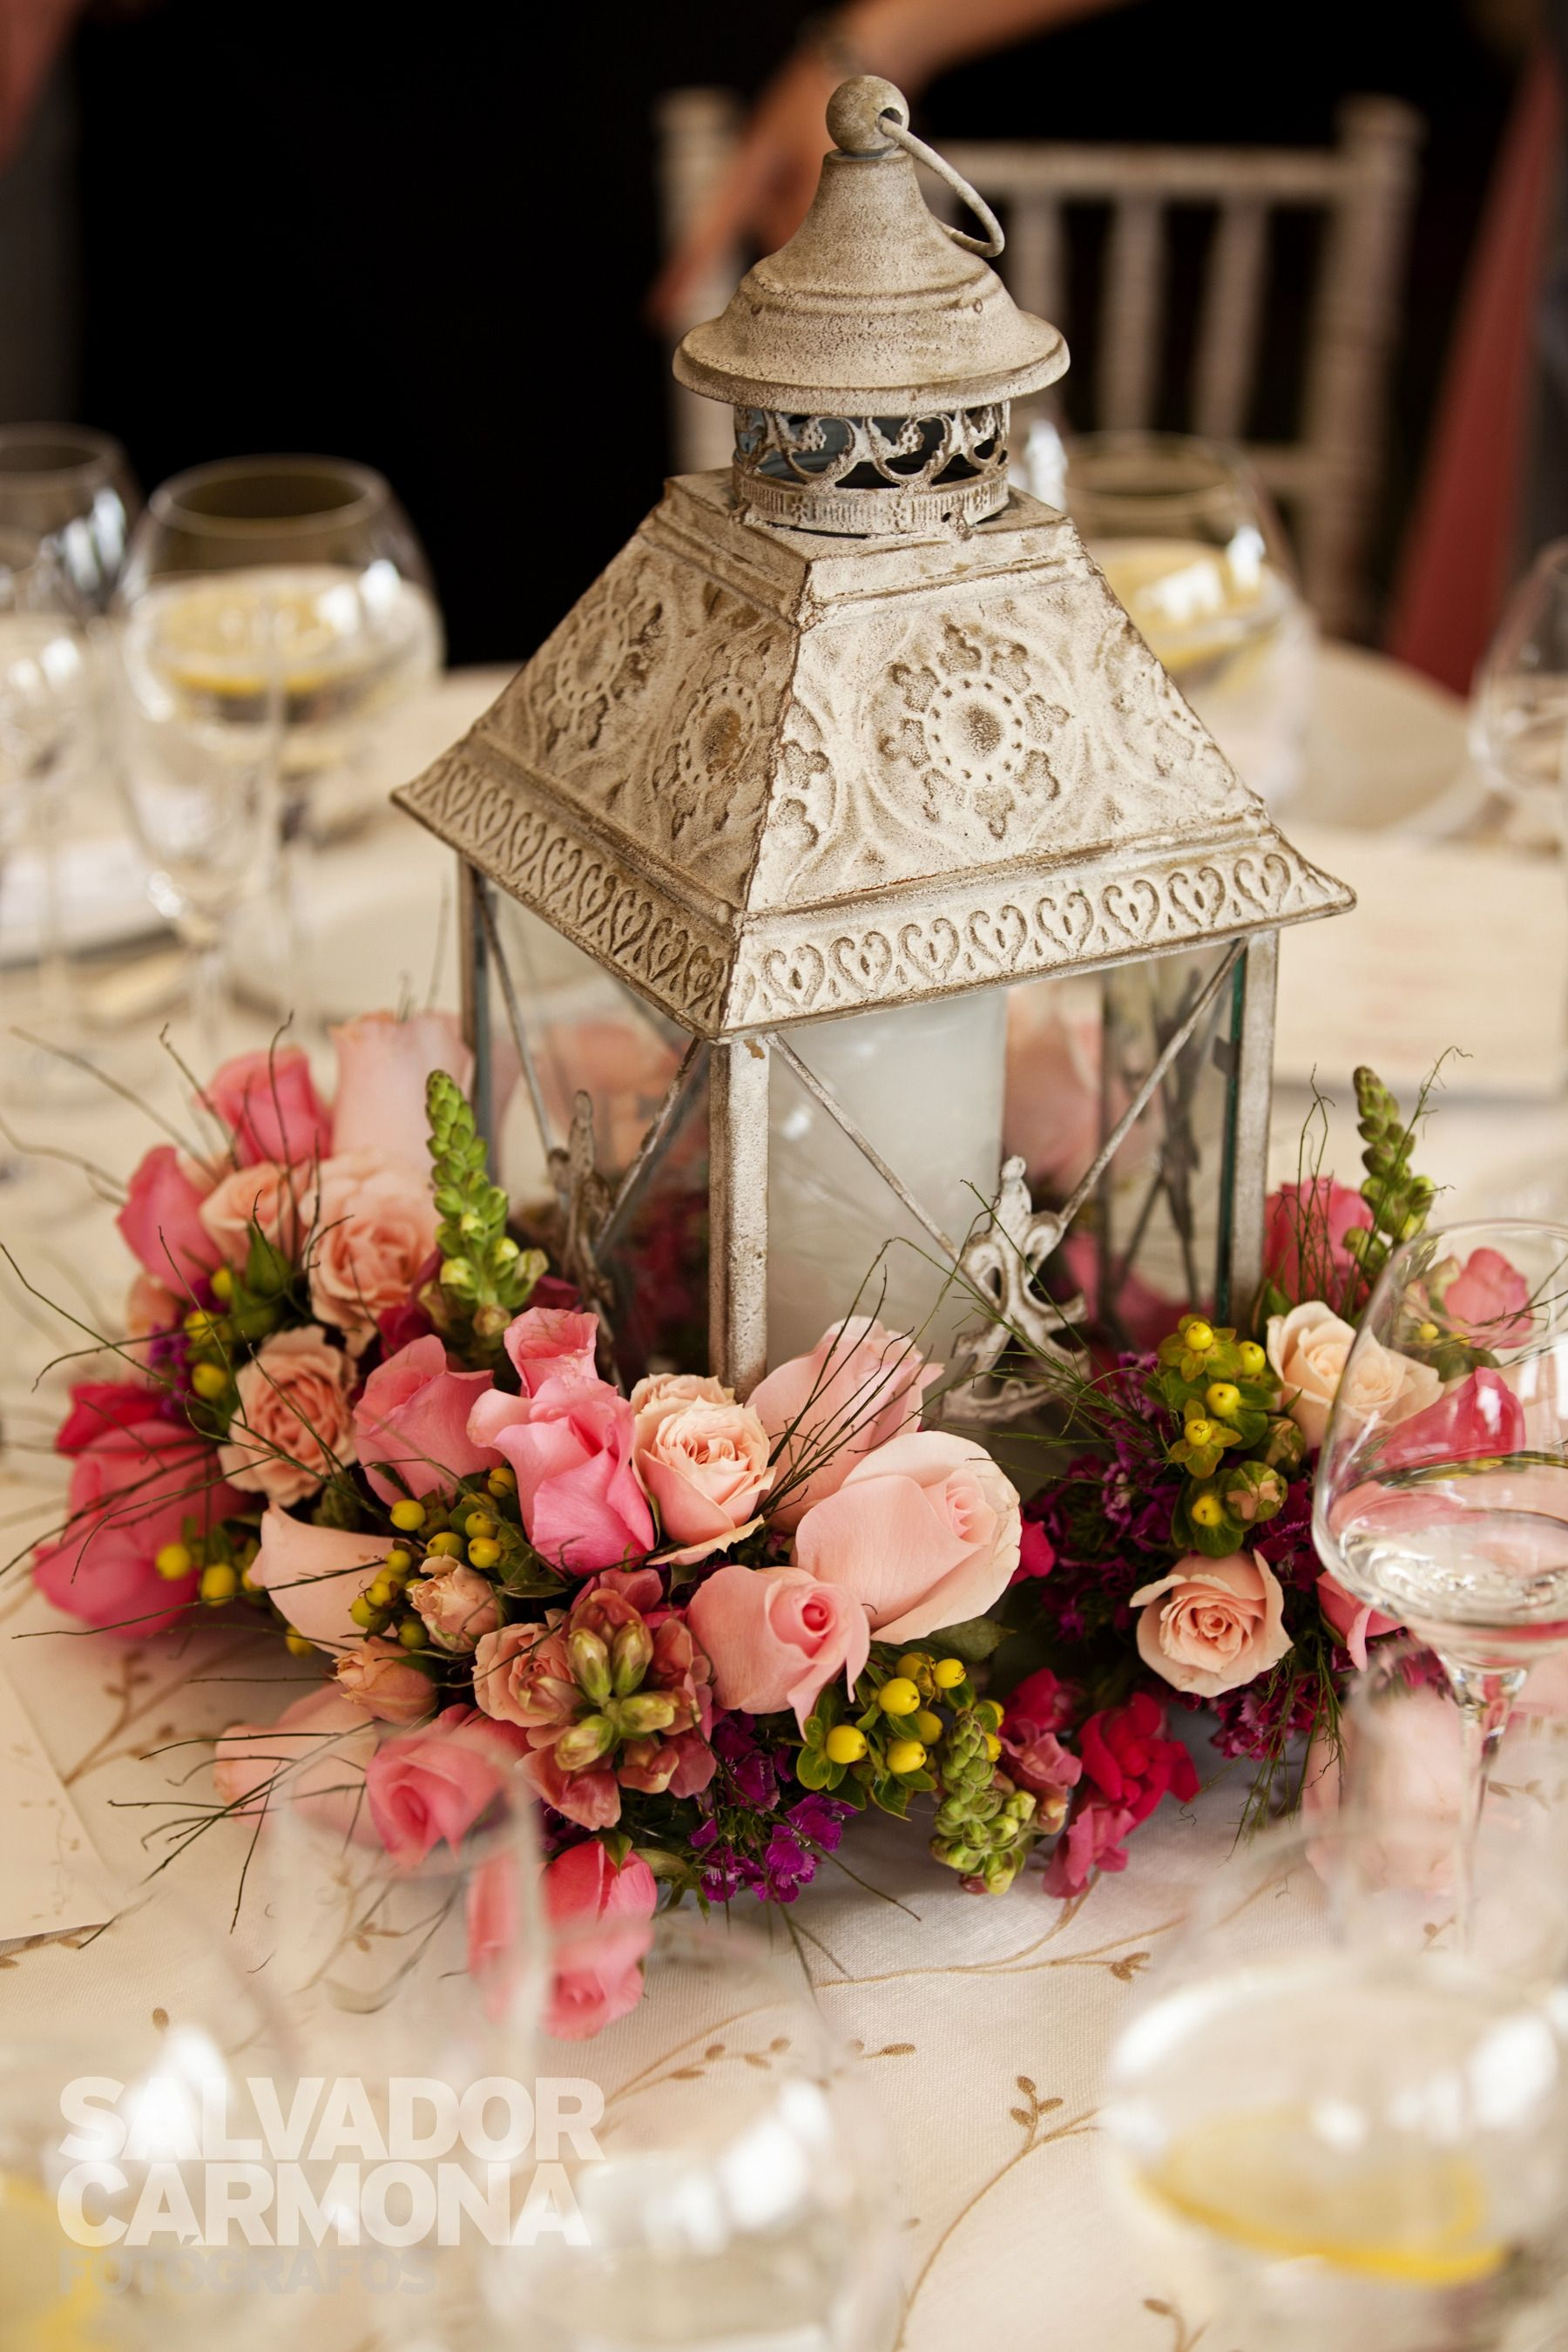 Lantern centerpiece Elegant and simple way to add decorative